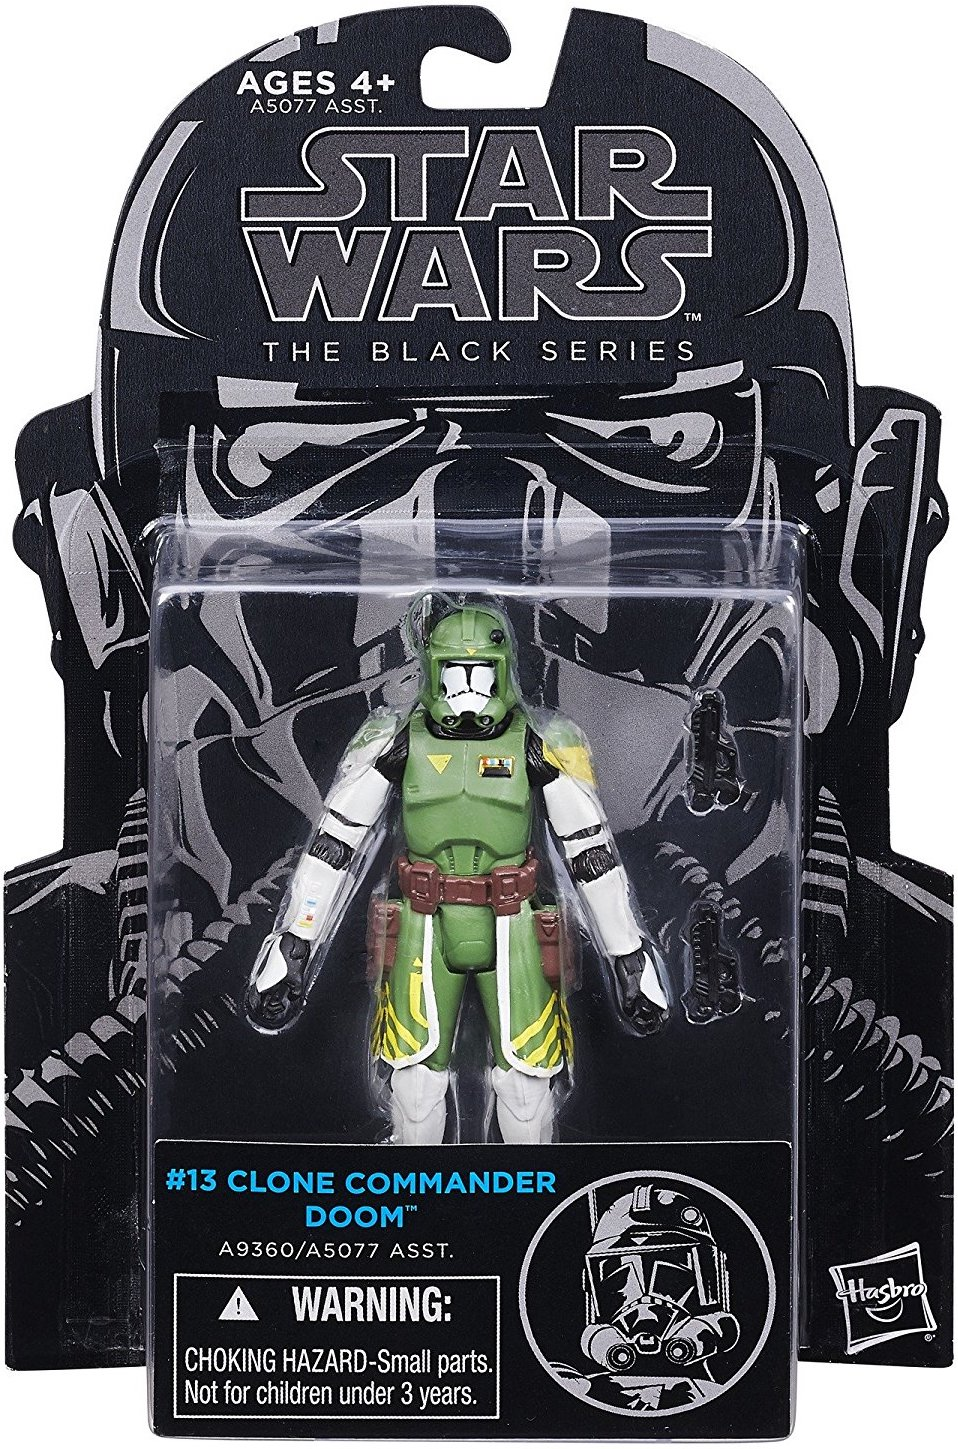 1990s star wars 12 inch figures price guide